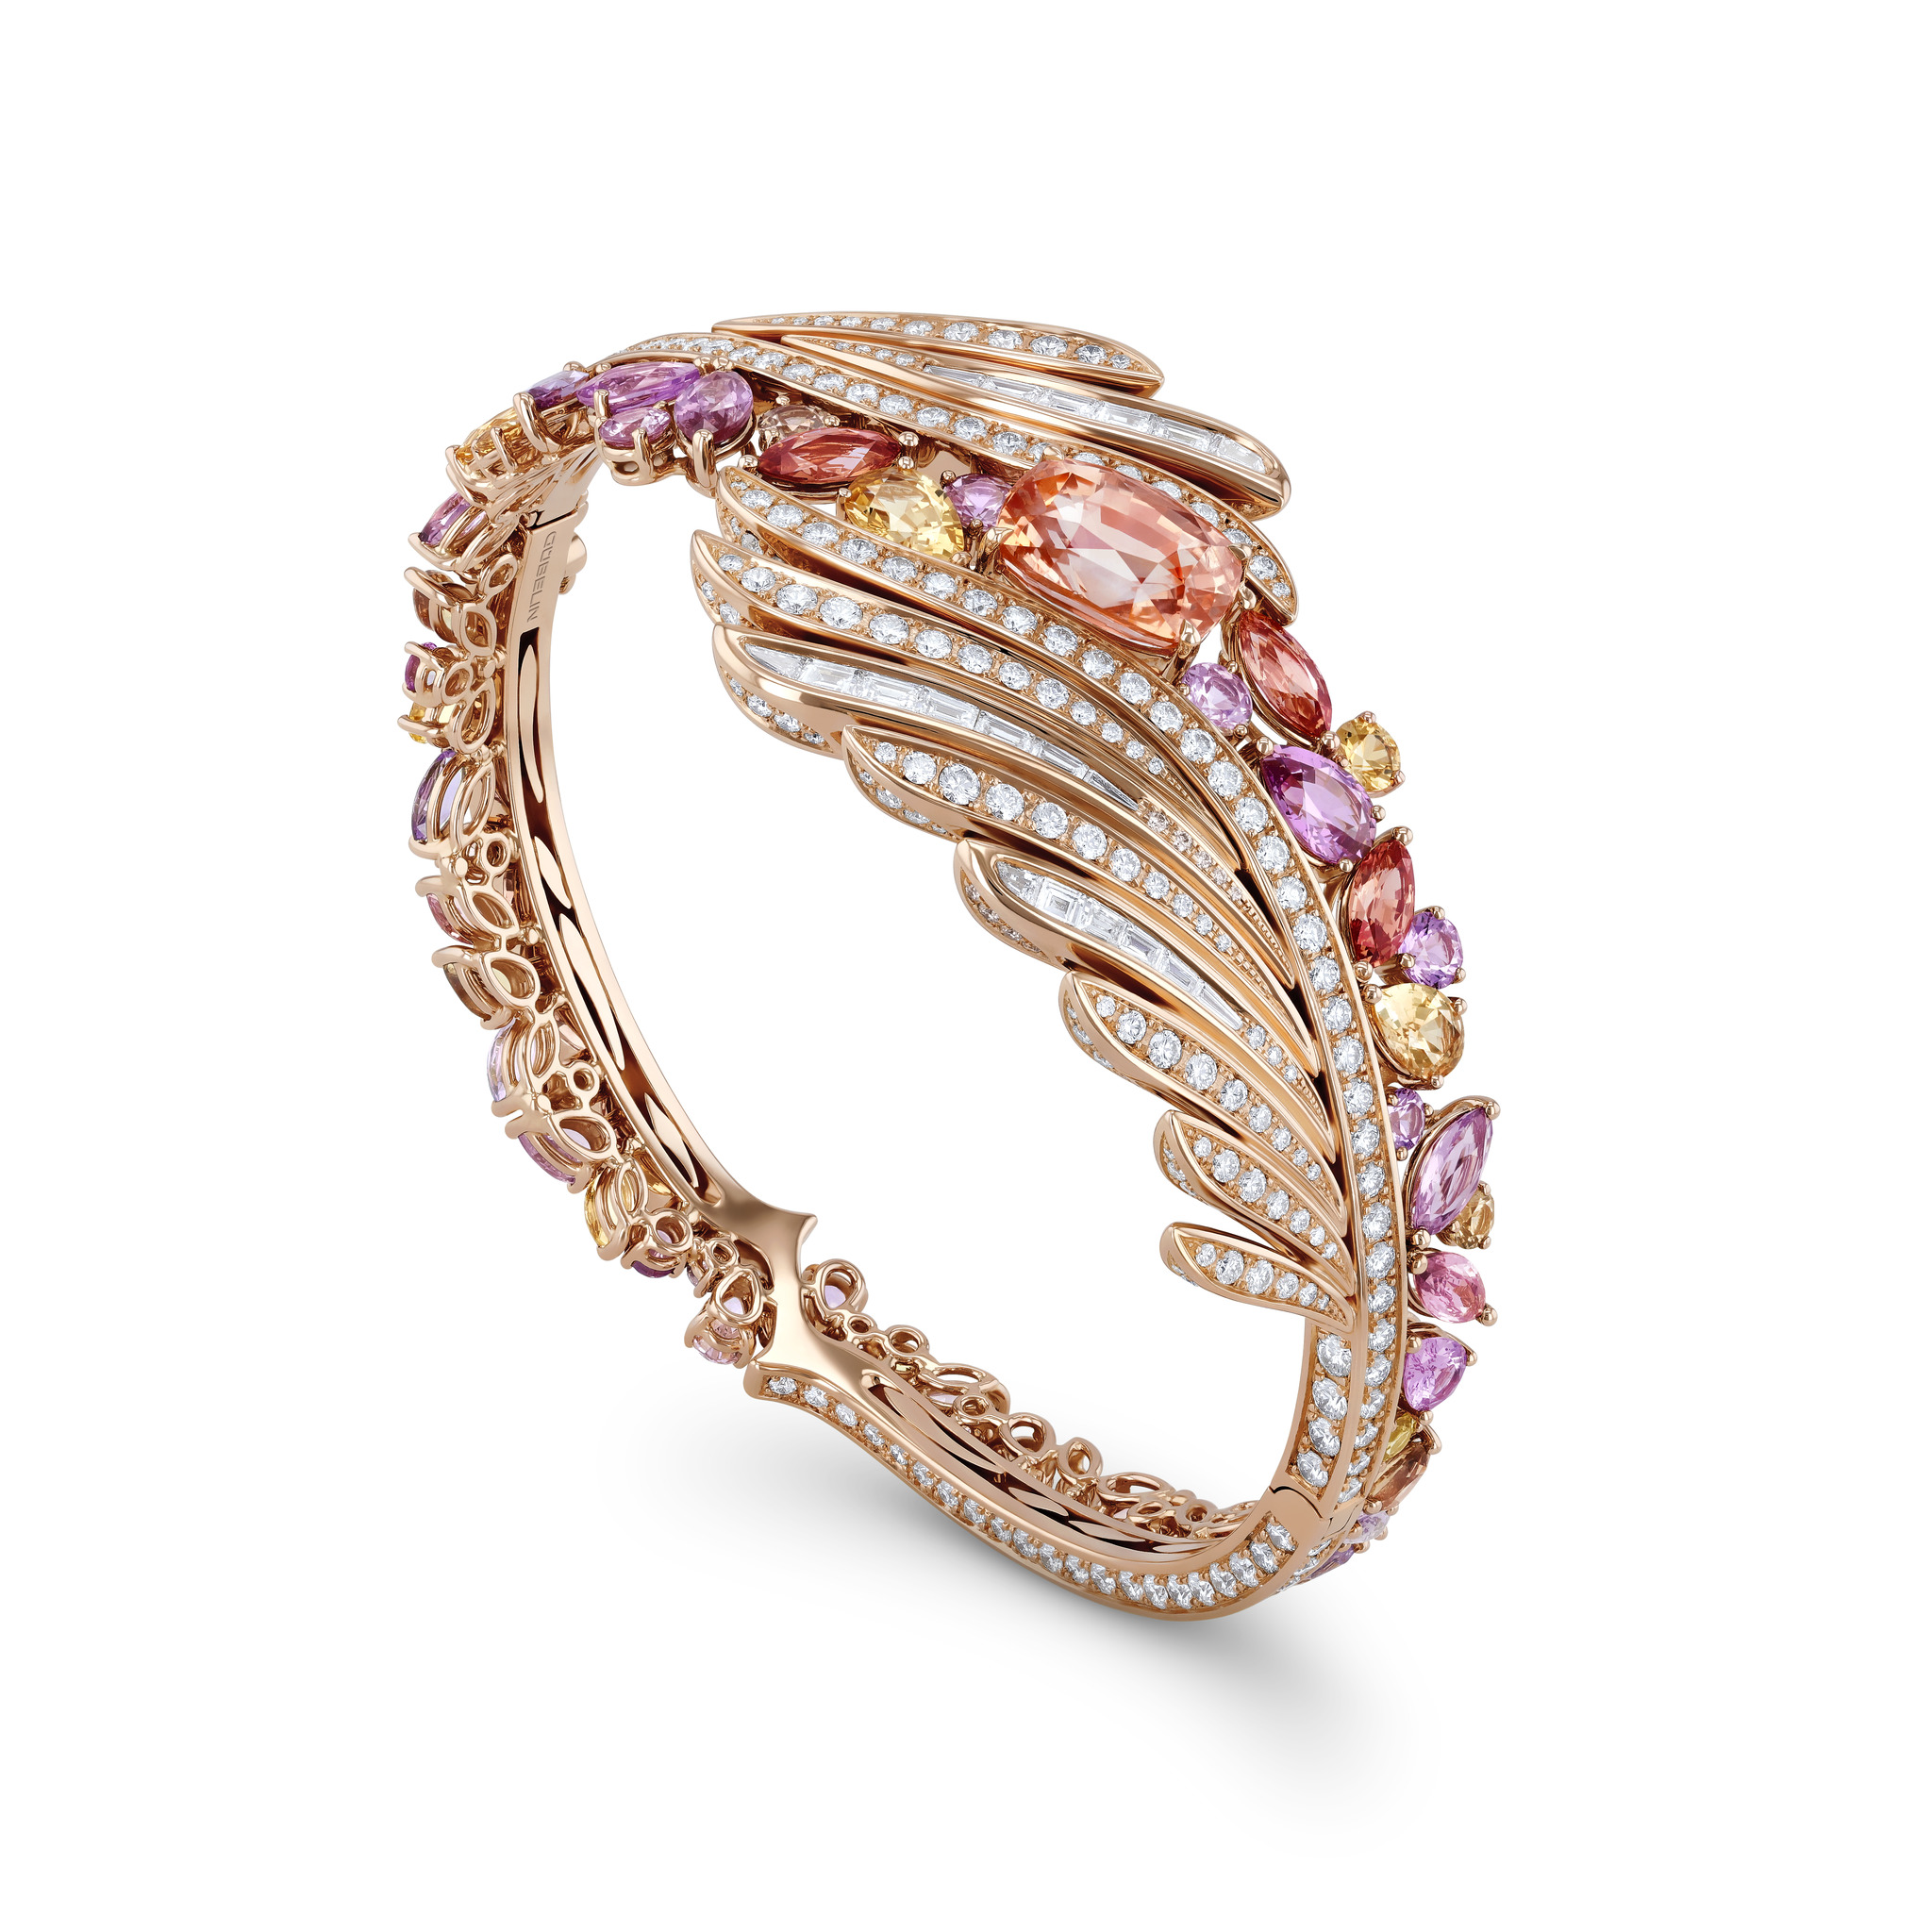 Bangle with sapphires